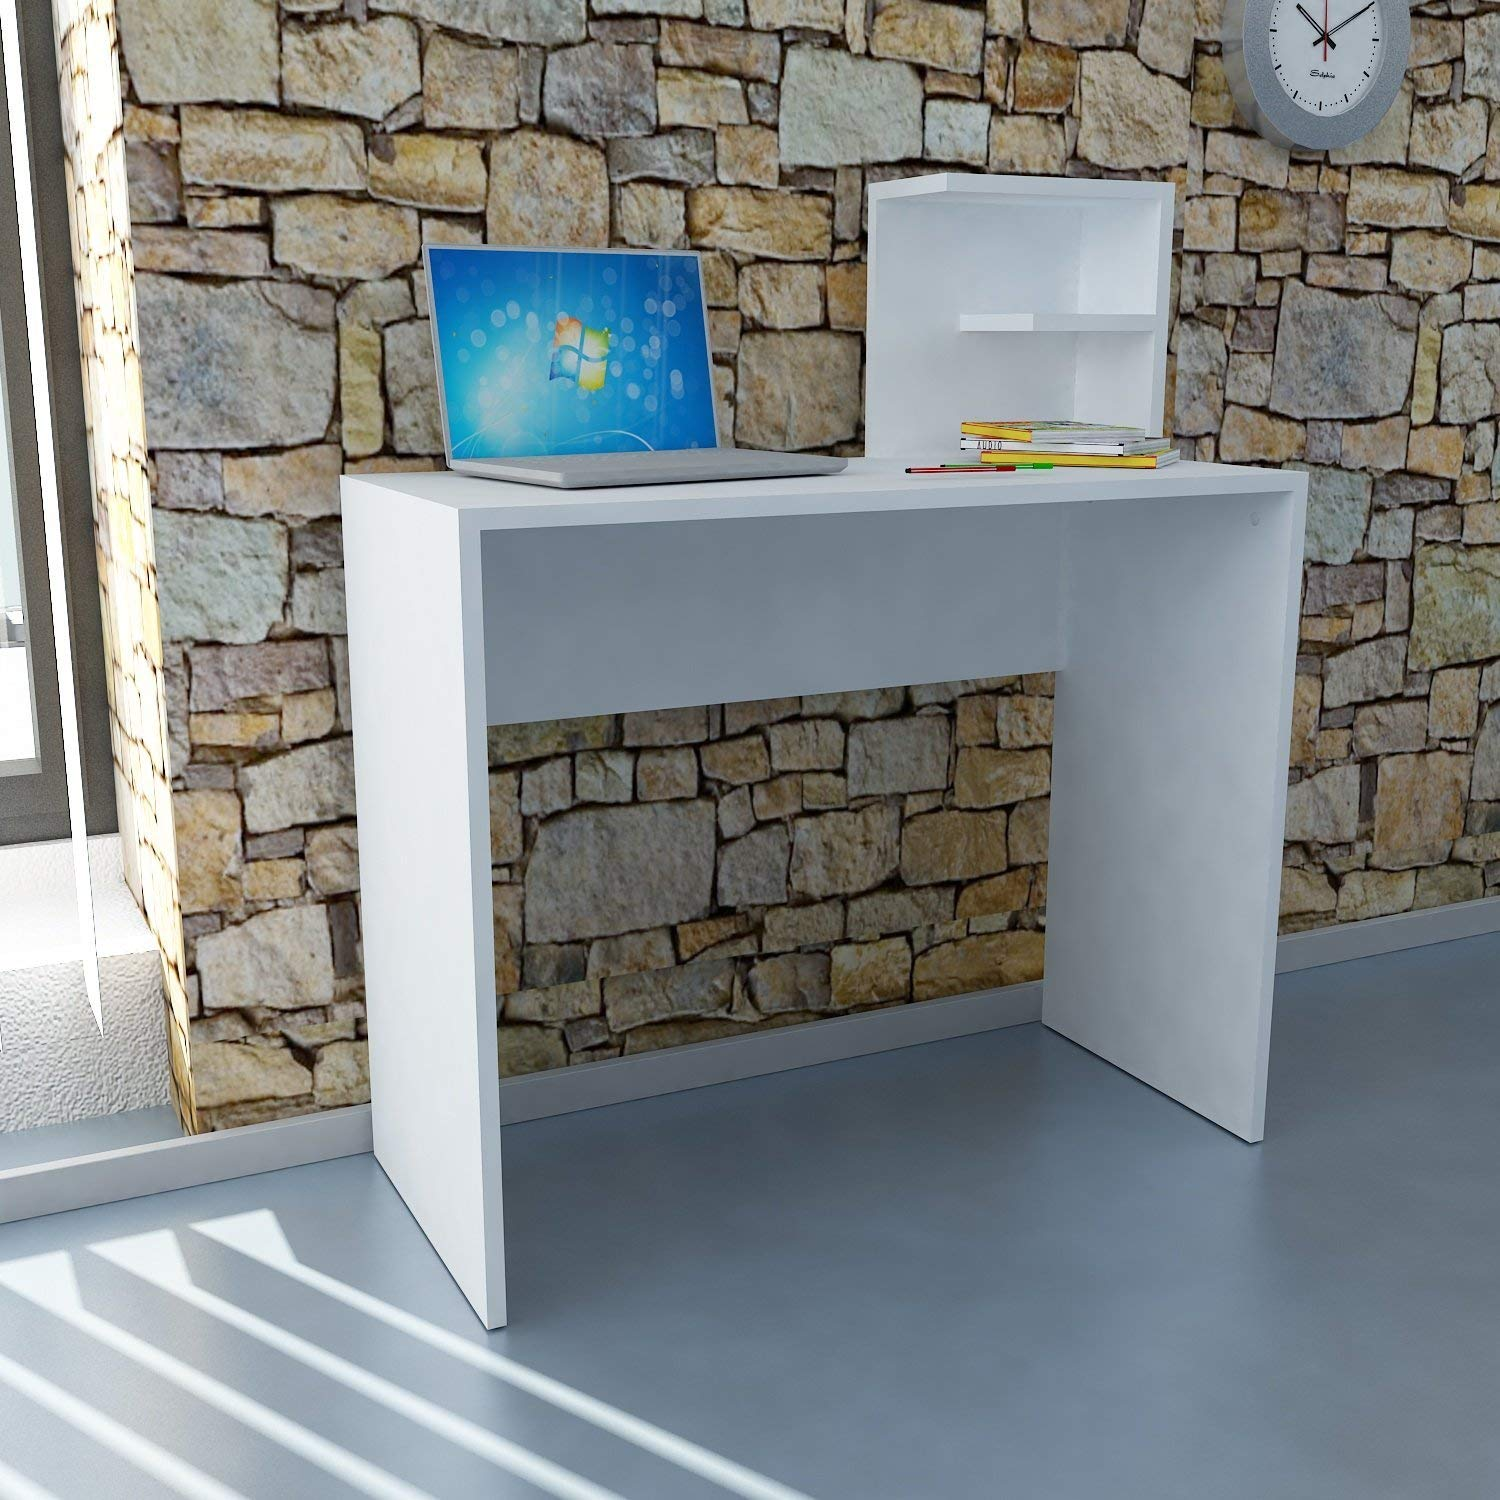 Writing Computer Desk Modern & Simple White One Color Simple 2 Pieces Rectangle Functional Study Desk Industrial Style Study & Laptop Table Home, Office, Living Room, Study Room Way - White White